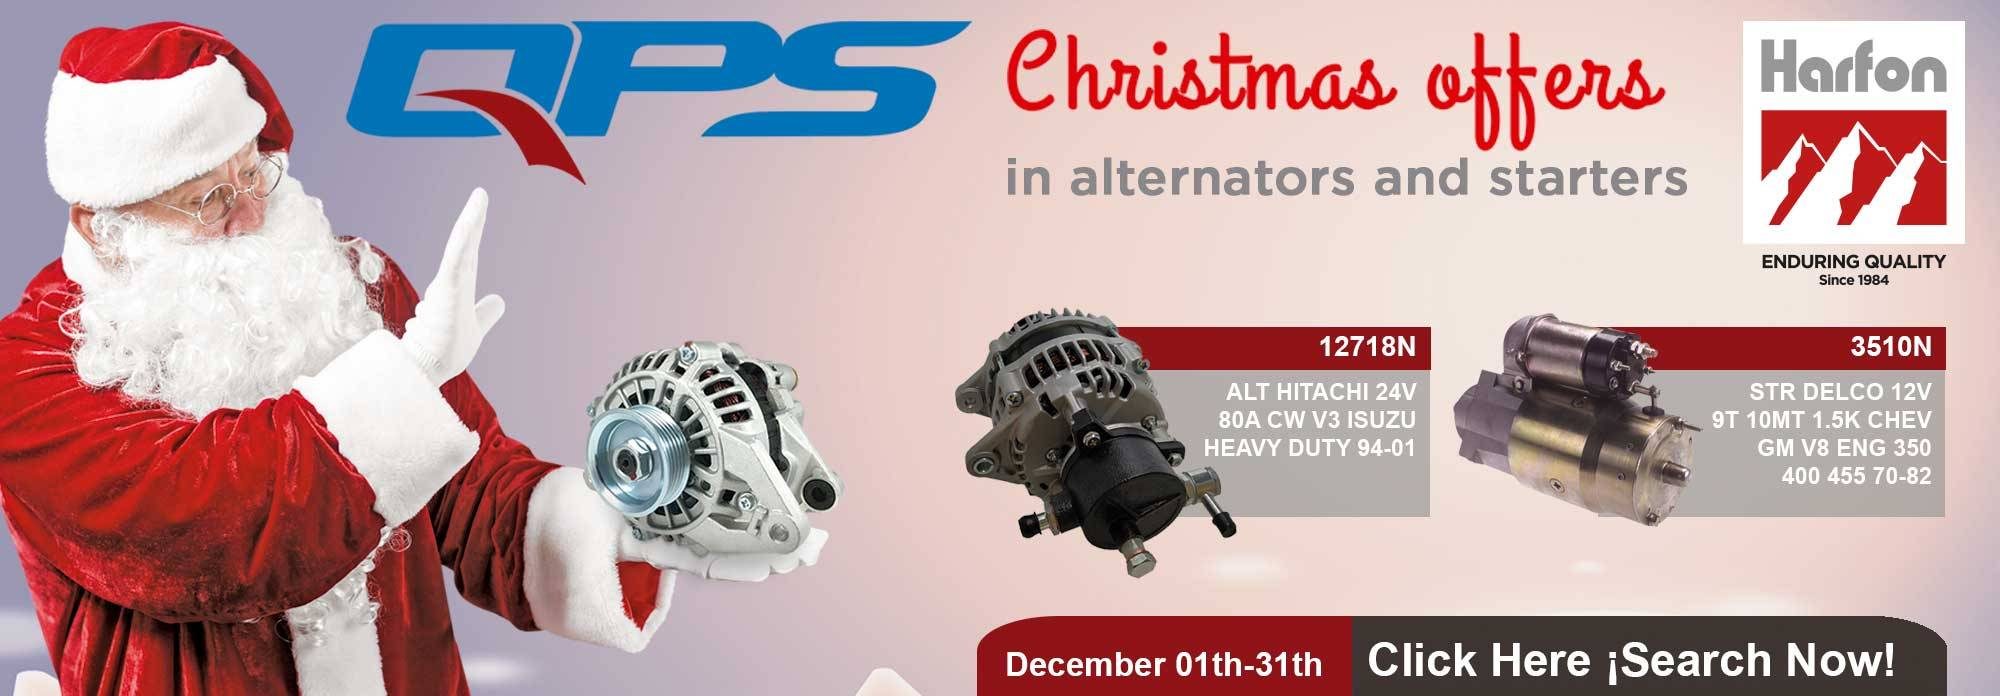 Christmas Offers in Alternators and Starters